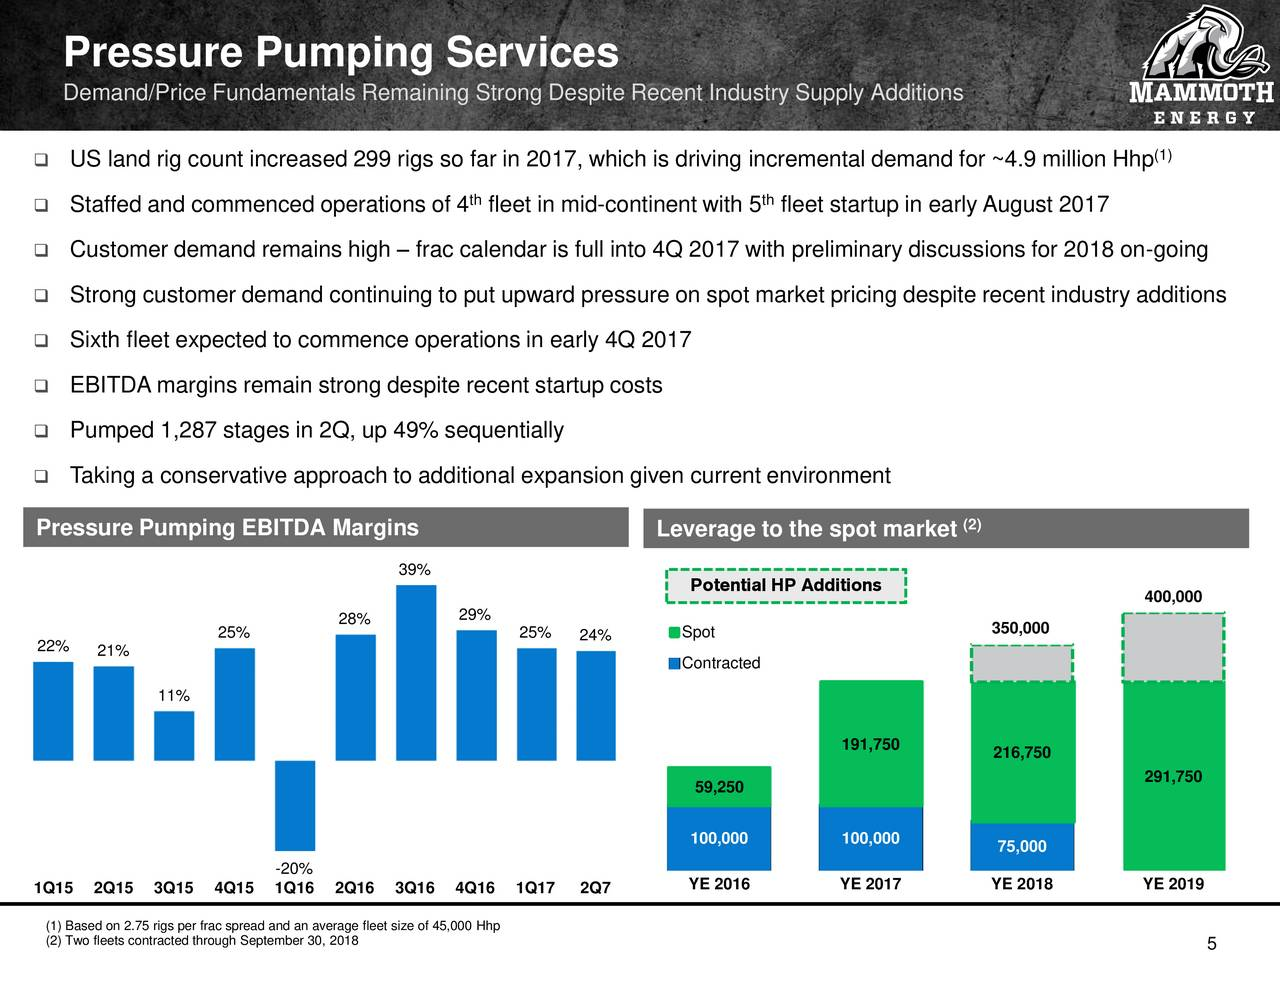 Mammoth Energy Services 2017 Q2